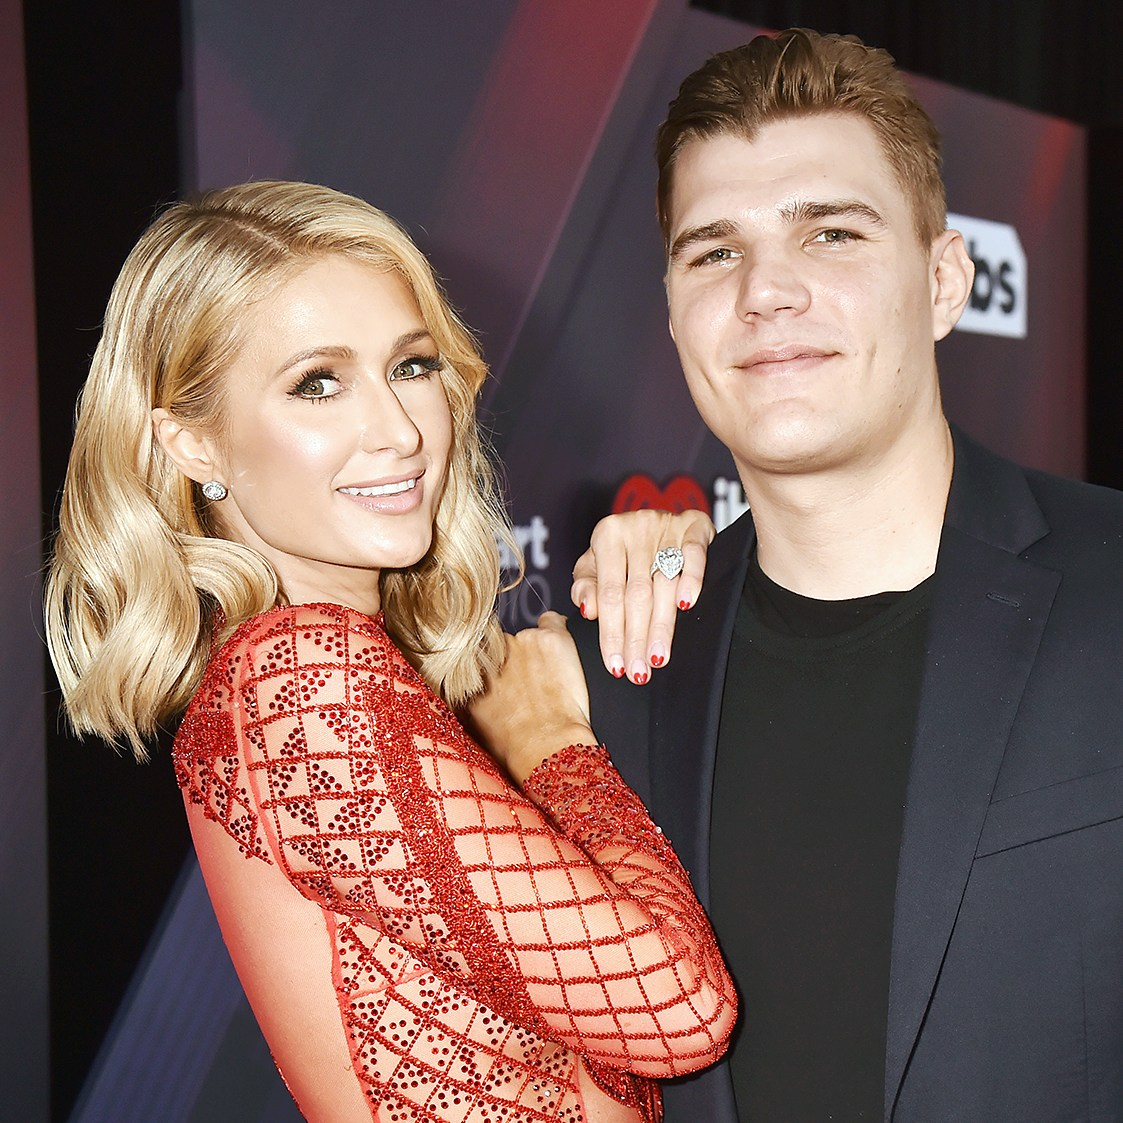 Paris Hilton Lost Engagement Ring While Dancing at Miami Nightclub